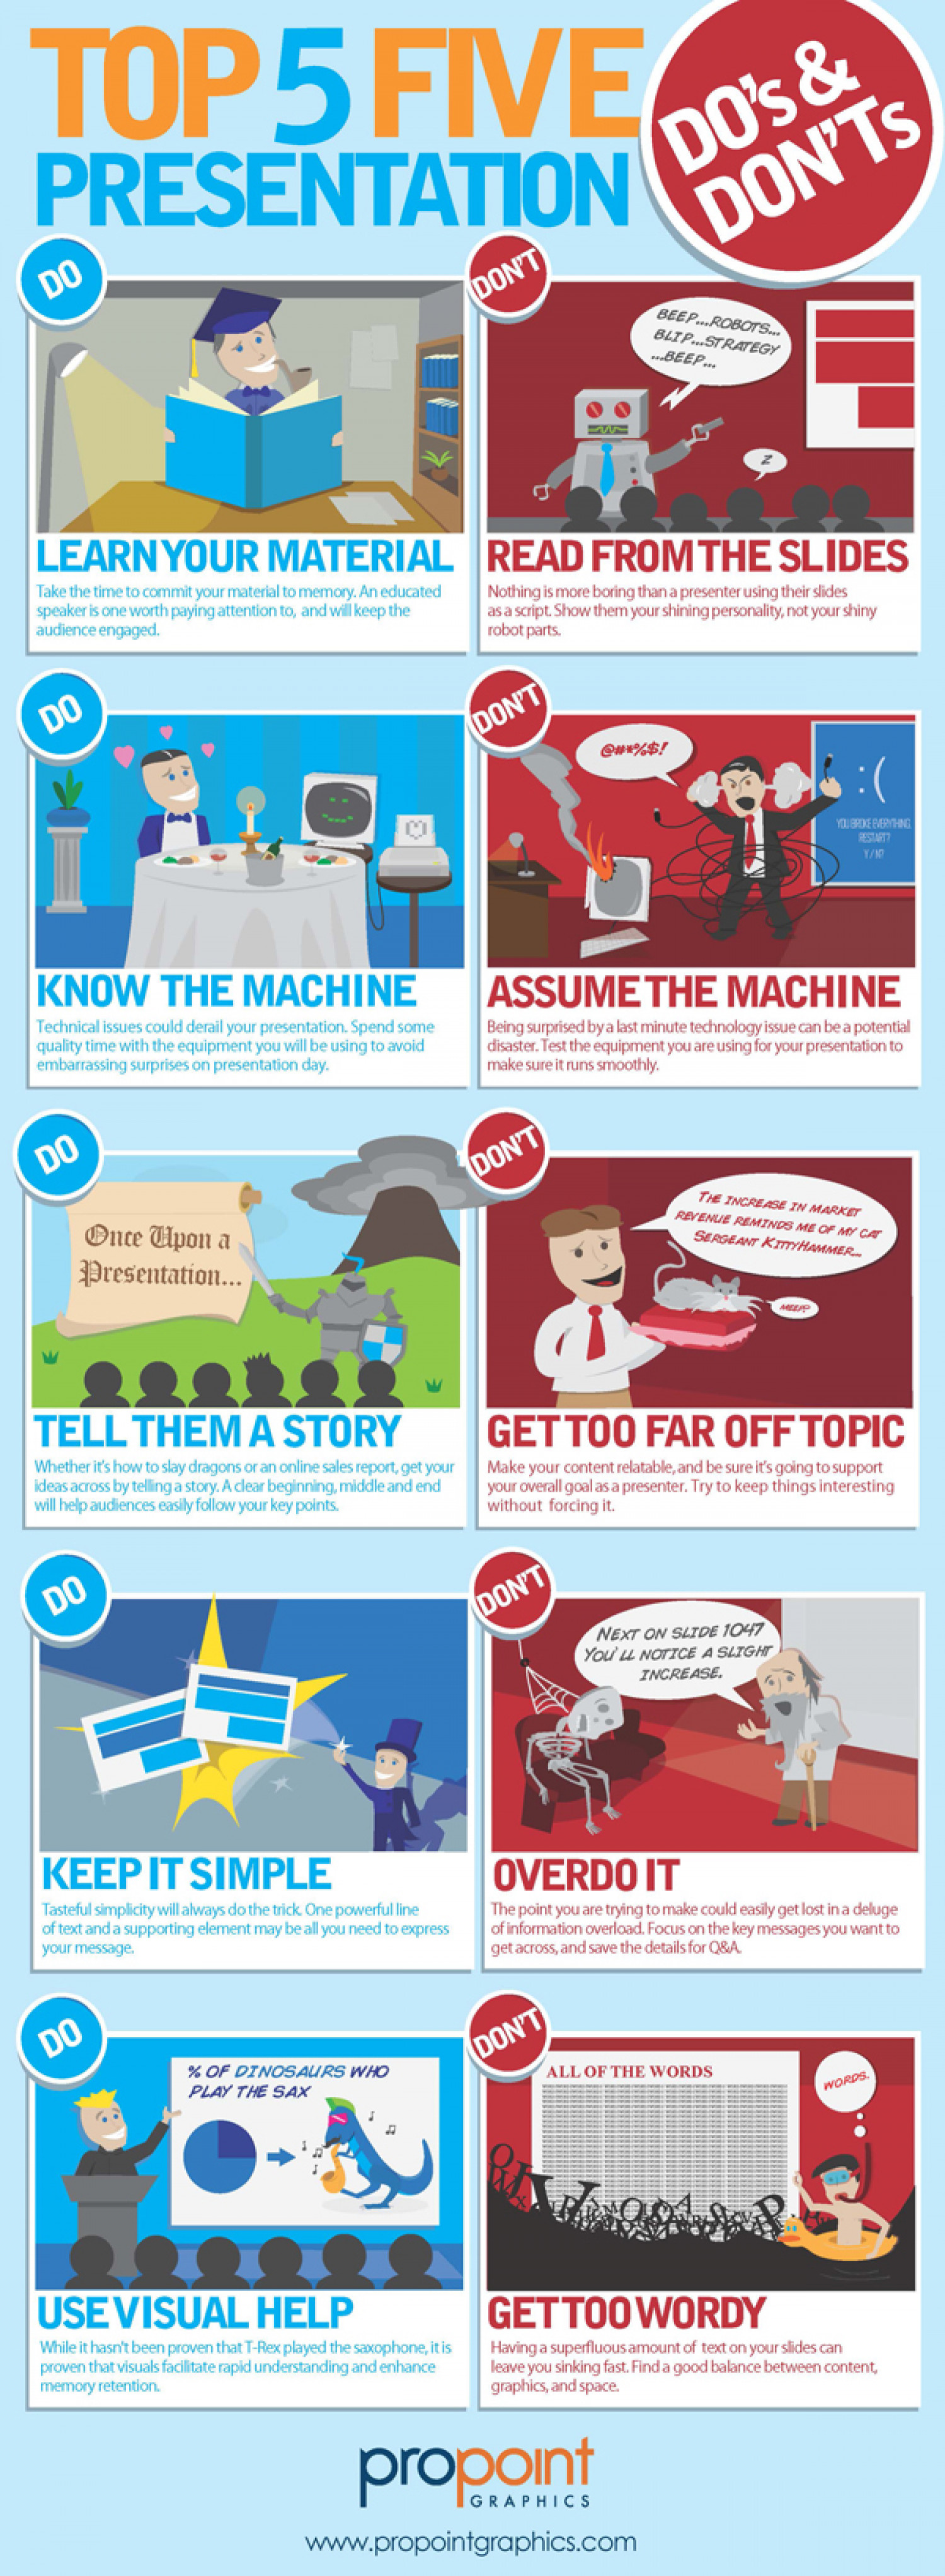 Top Five Presentation Do's & Don'ts Infographic